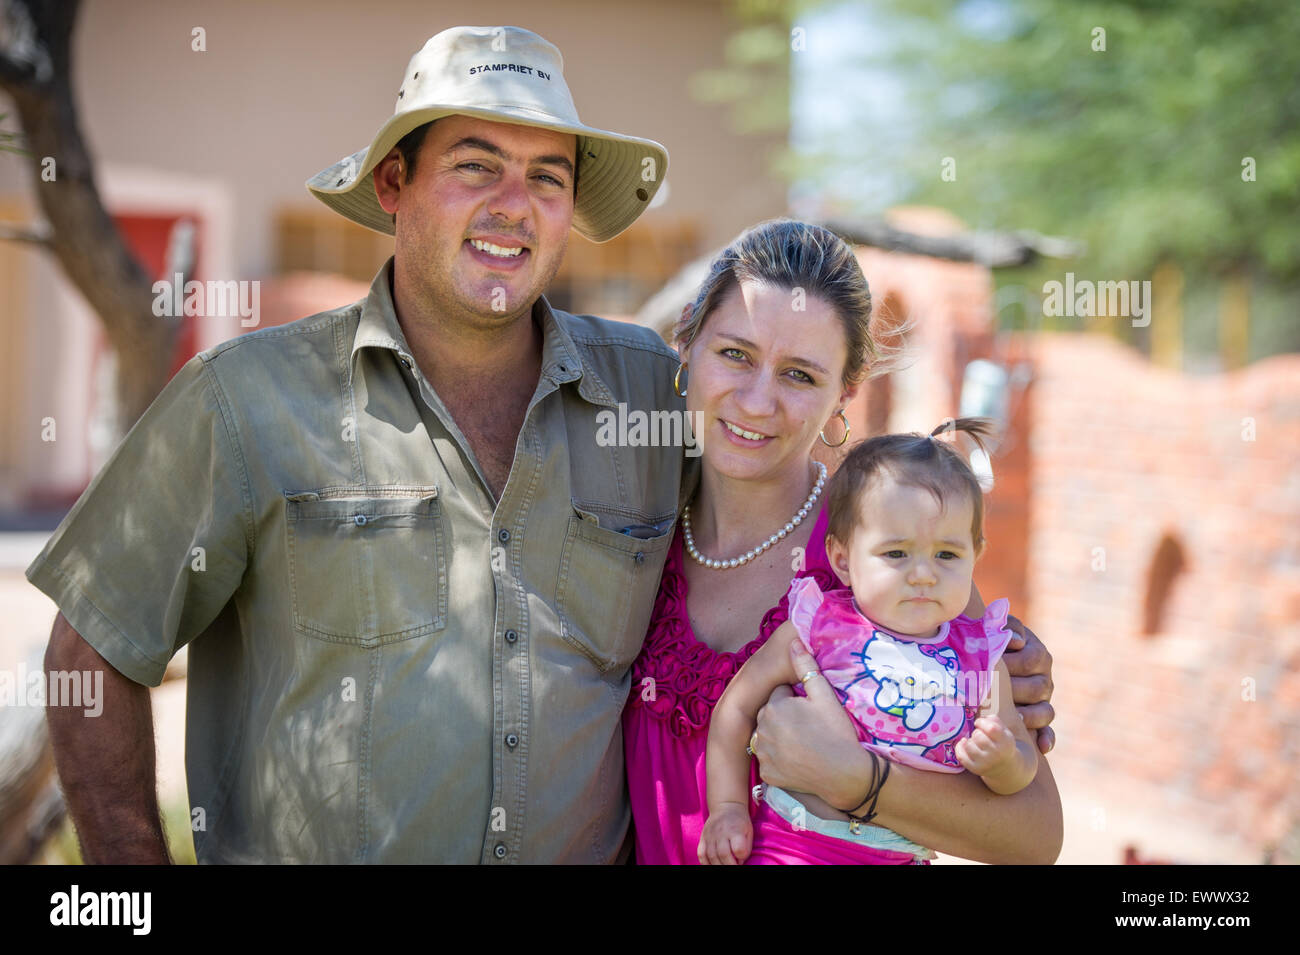 Namibia - Family portrait on farm in Africa. - Stock Image